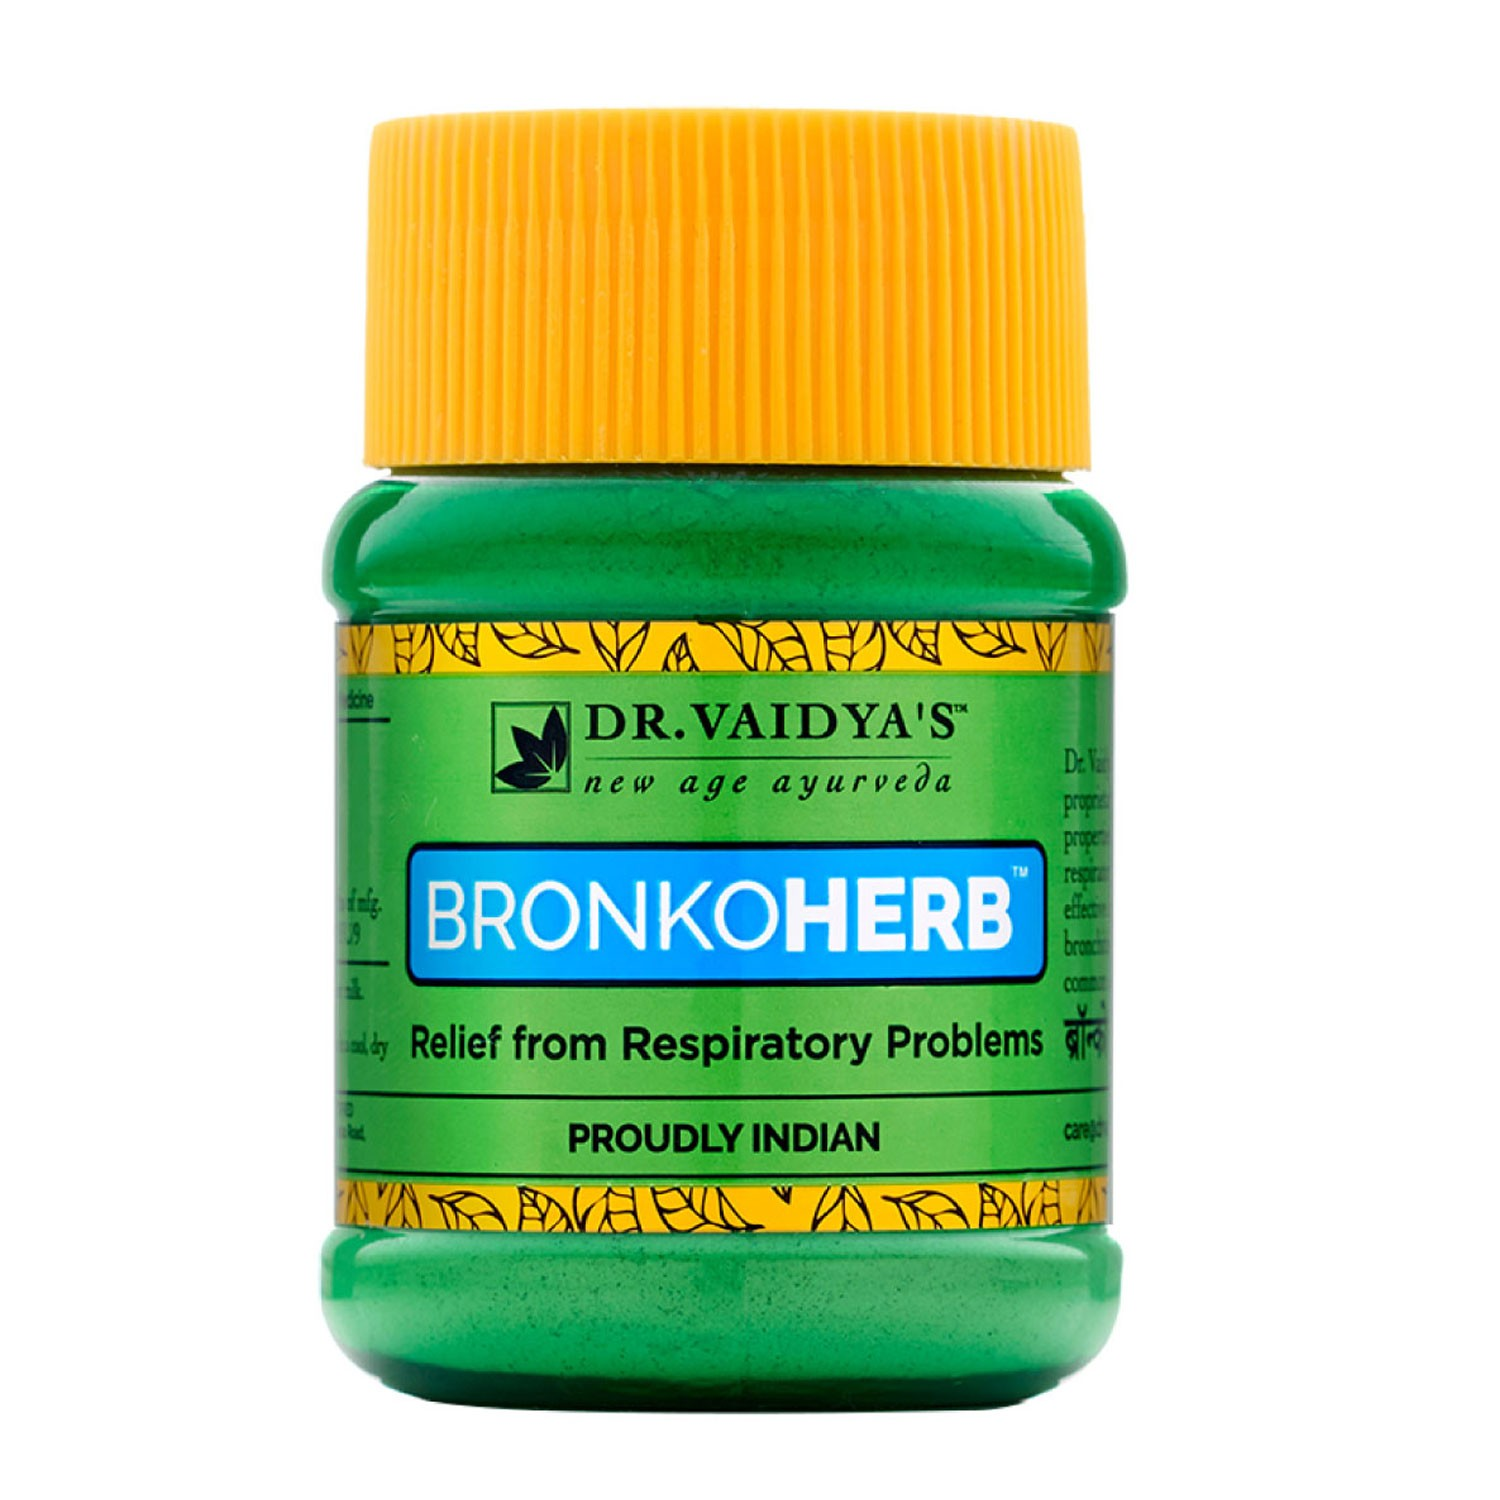 Dr. Vaidya's Bronkoherb Powder Ayurvecic Treatment for Asthma & Respiratory Problems - Pack of 2